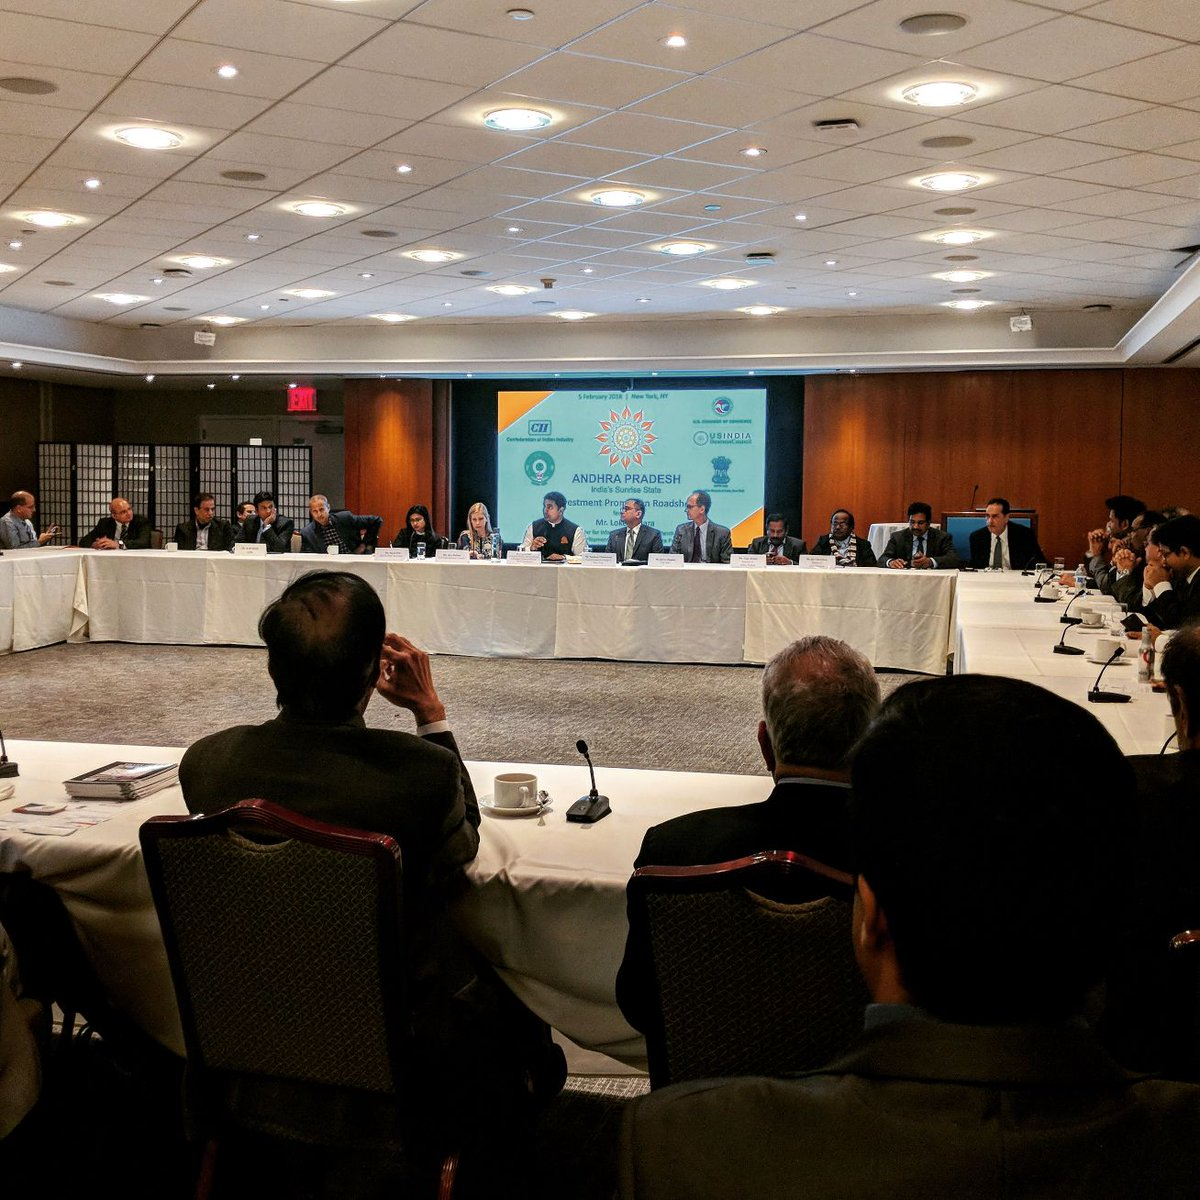 Confederation of indian industry on twitter andhra pradeshs andhra pradeshs minister of it rural development naralokesh addresses investors in new york at the cii usibc and indiainnewyork investment promotion publicscrutiny Gallery